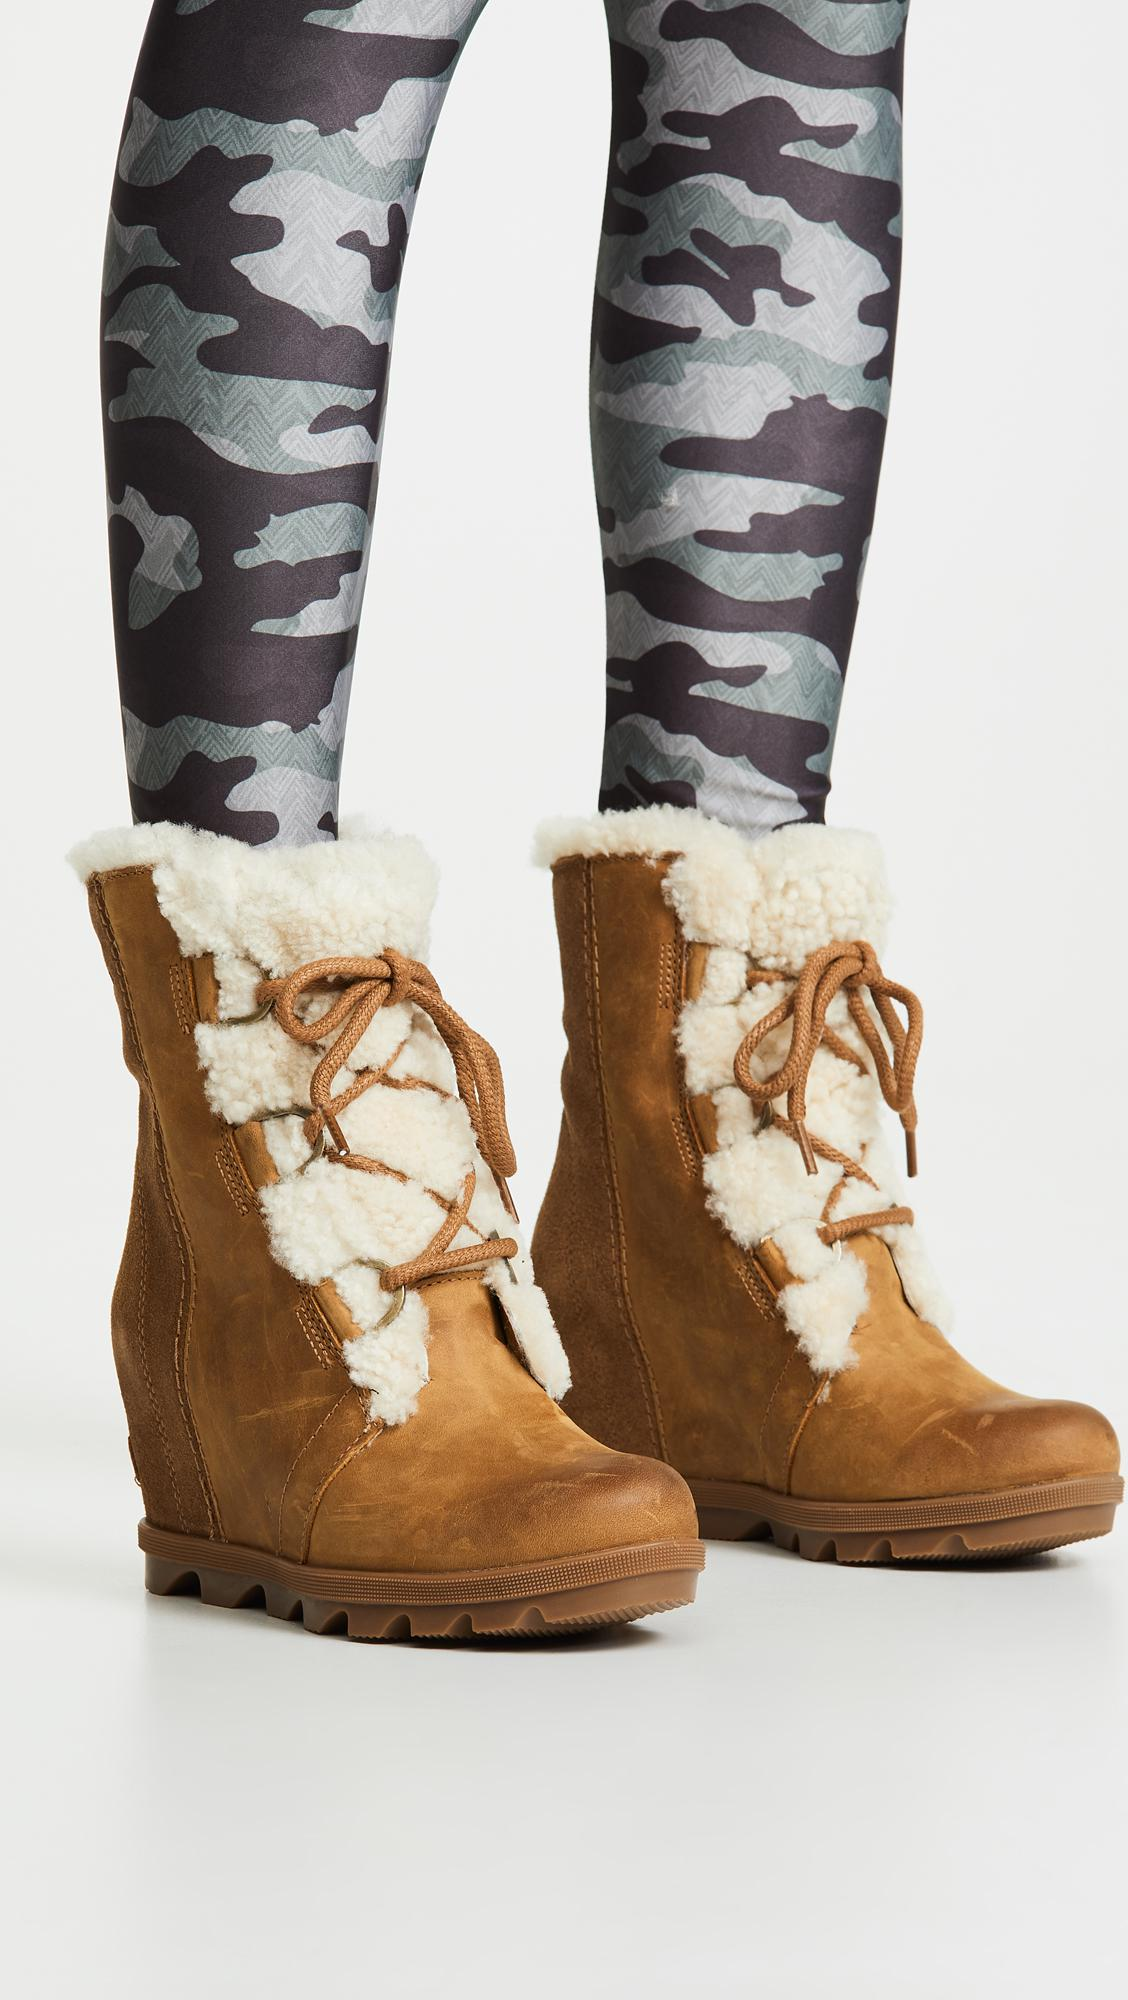 a124dbbf5039 Sorel Joan Of Arctic Wedge Ii Lux Boots in Brown - Lyst